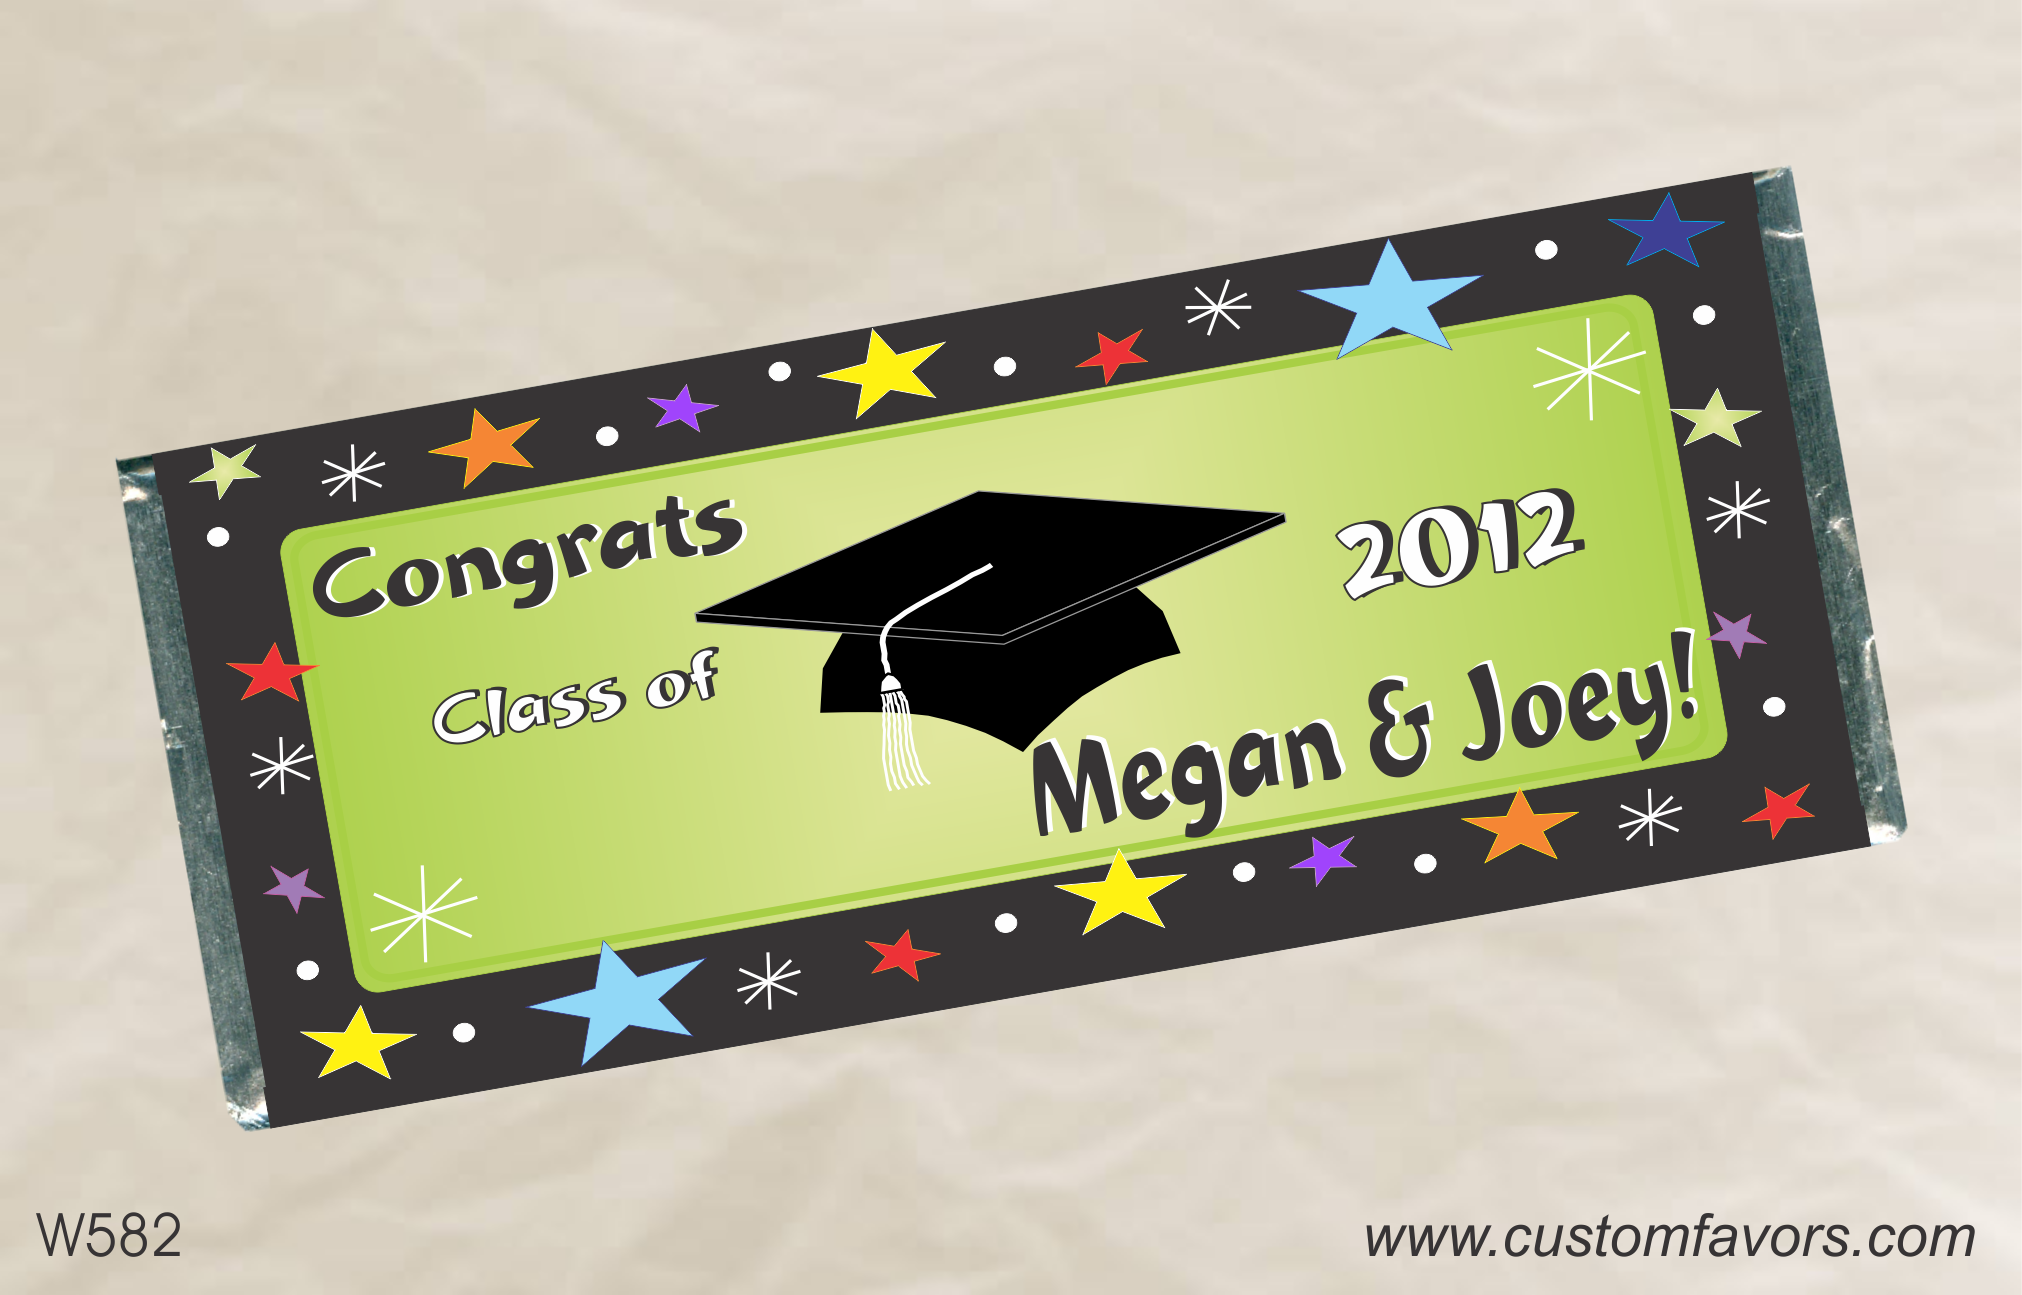 Graduation party favors - personalized candy bar wrappers from www.customfavors.com. #graduation #grad #customchocolate #chocolate